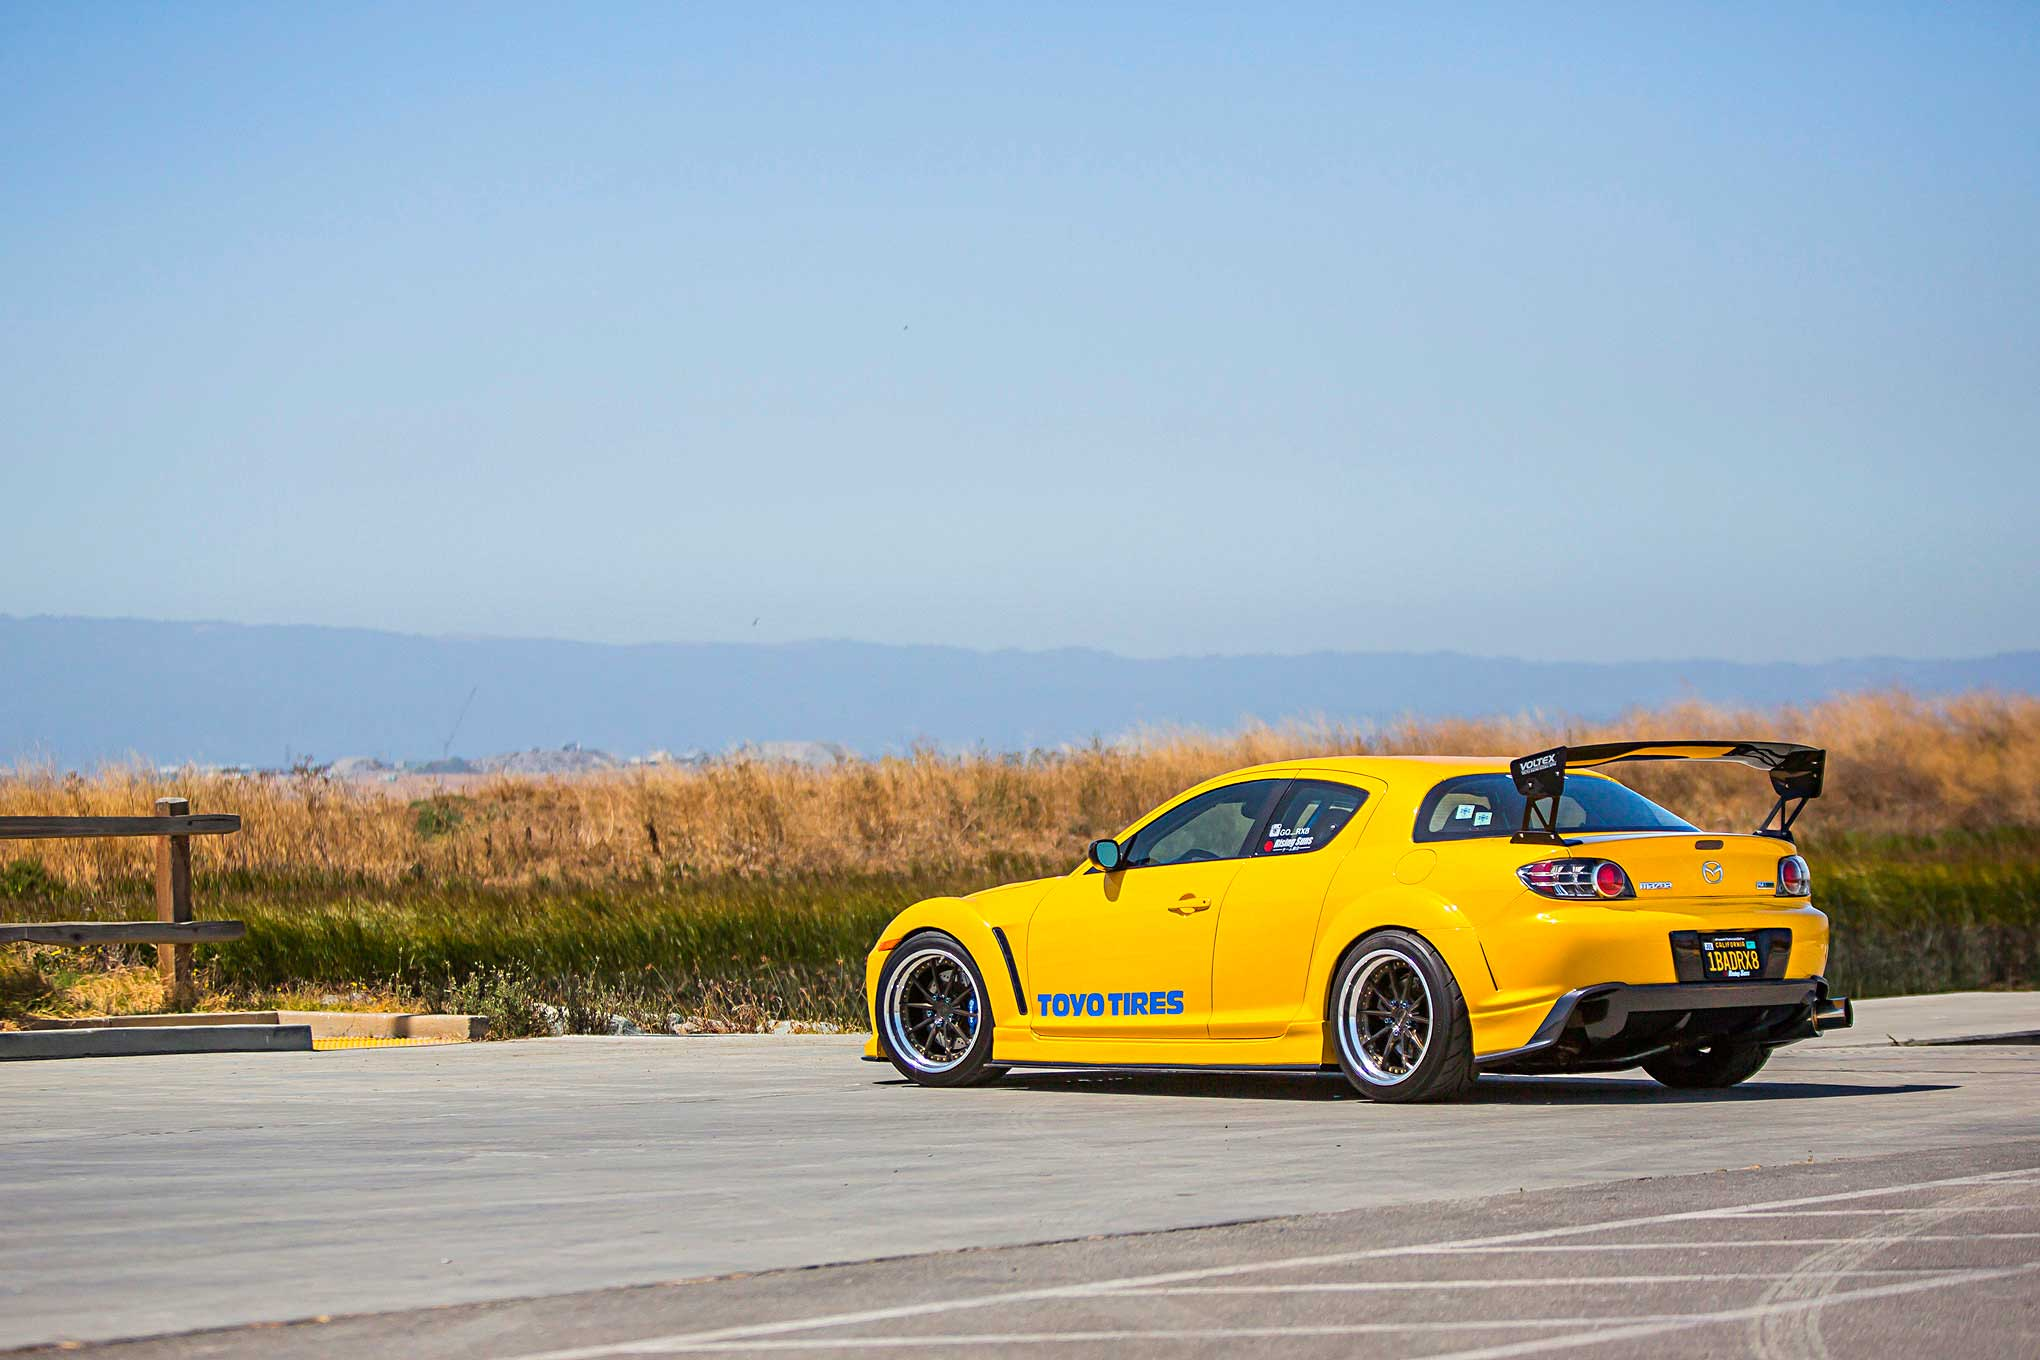 2004 mazda rx 8 13brewed to perfection